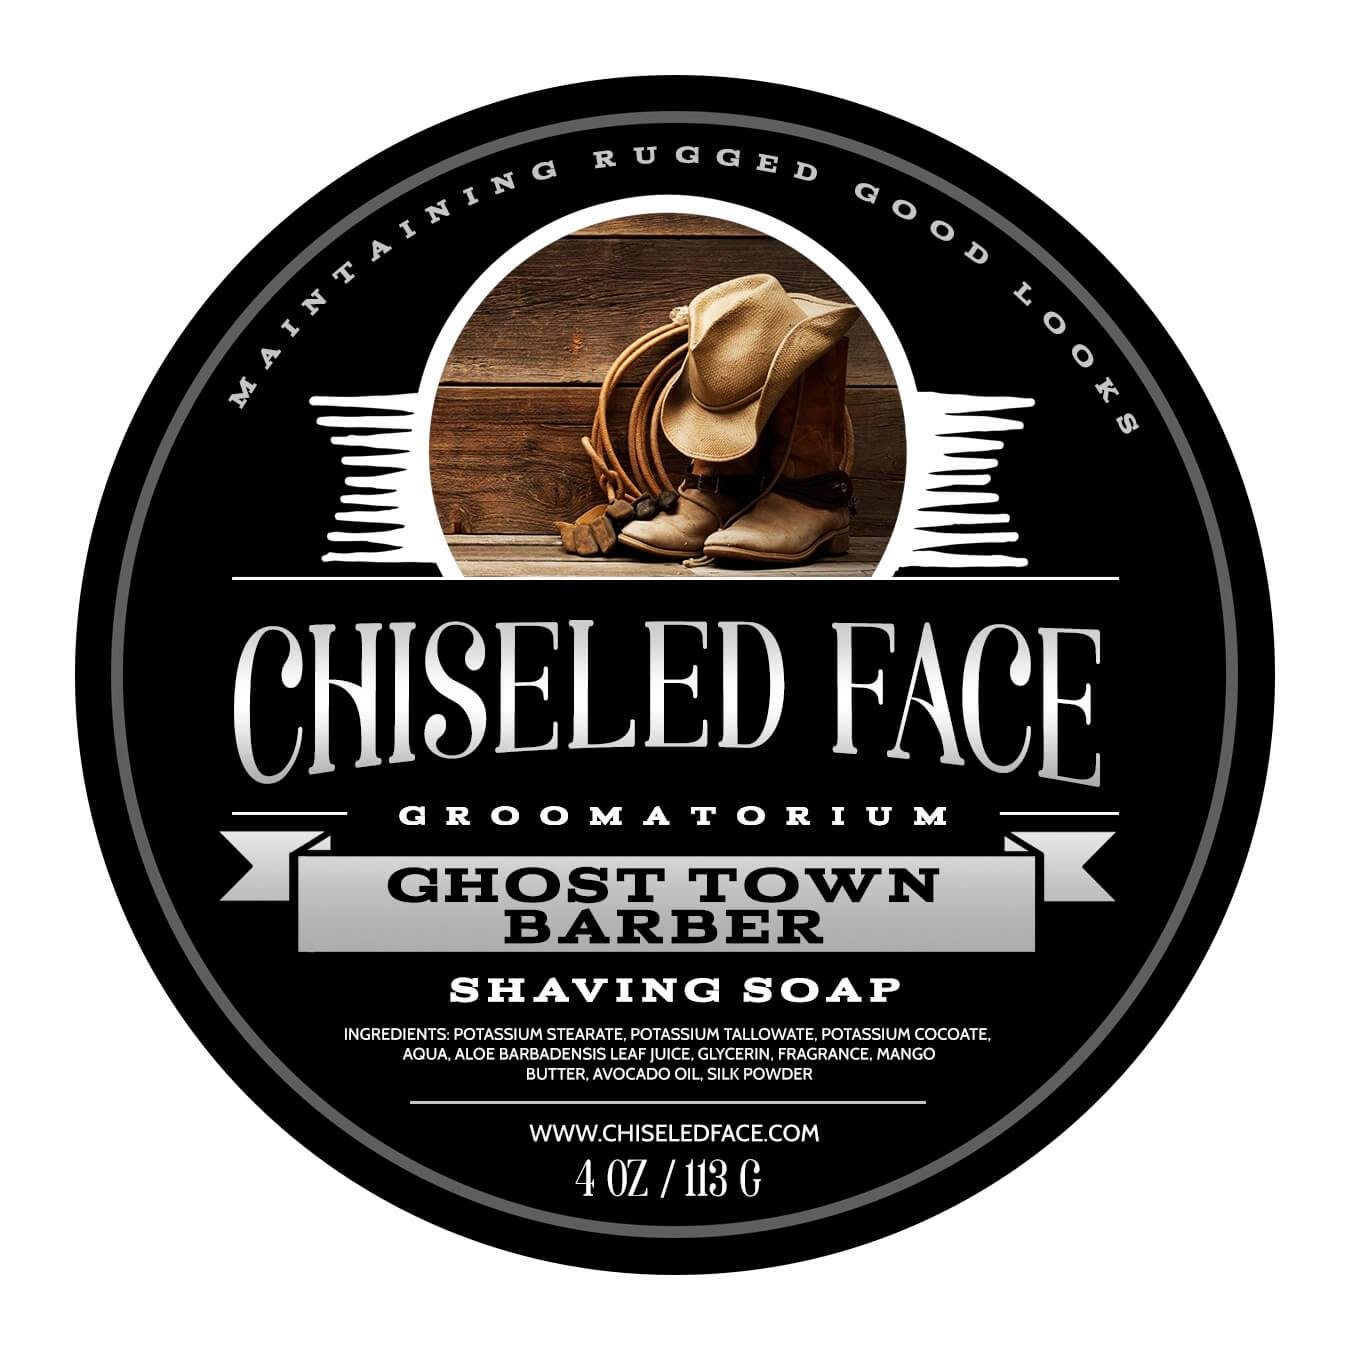 Chiseled Face - Ghost Town Barber - Soap image